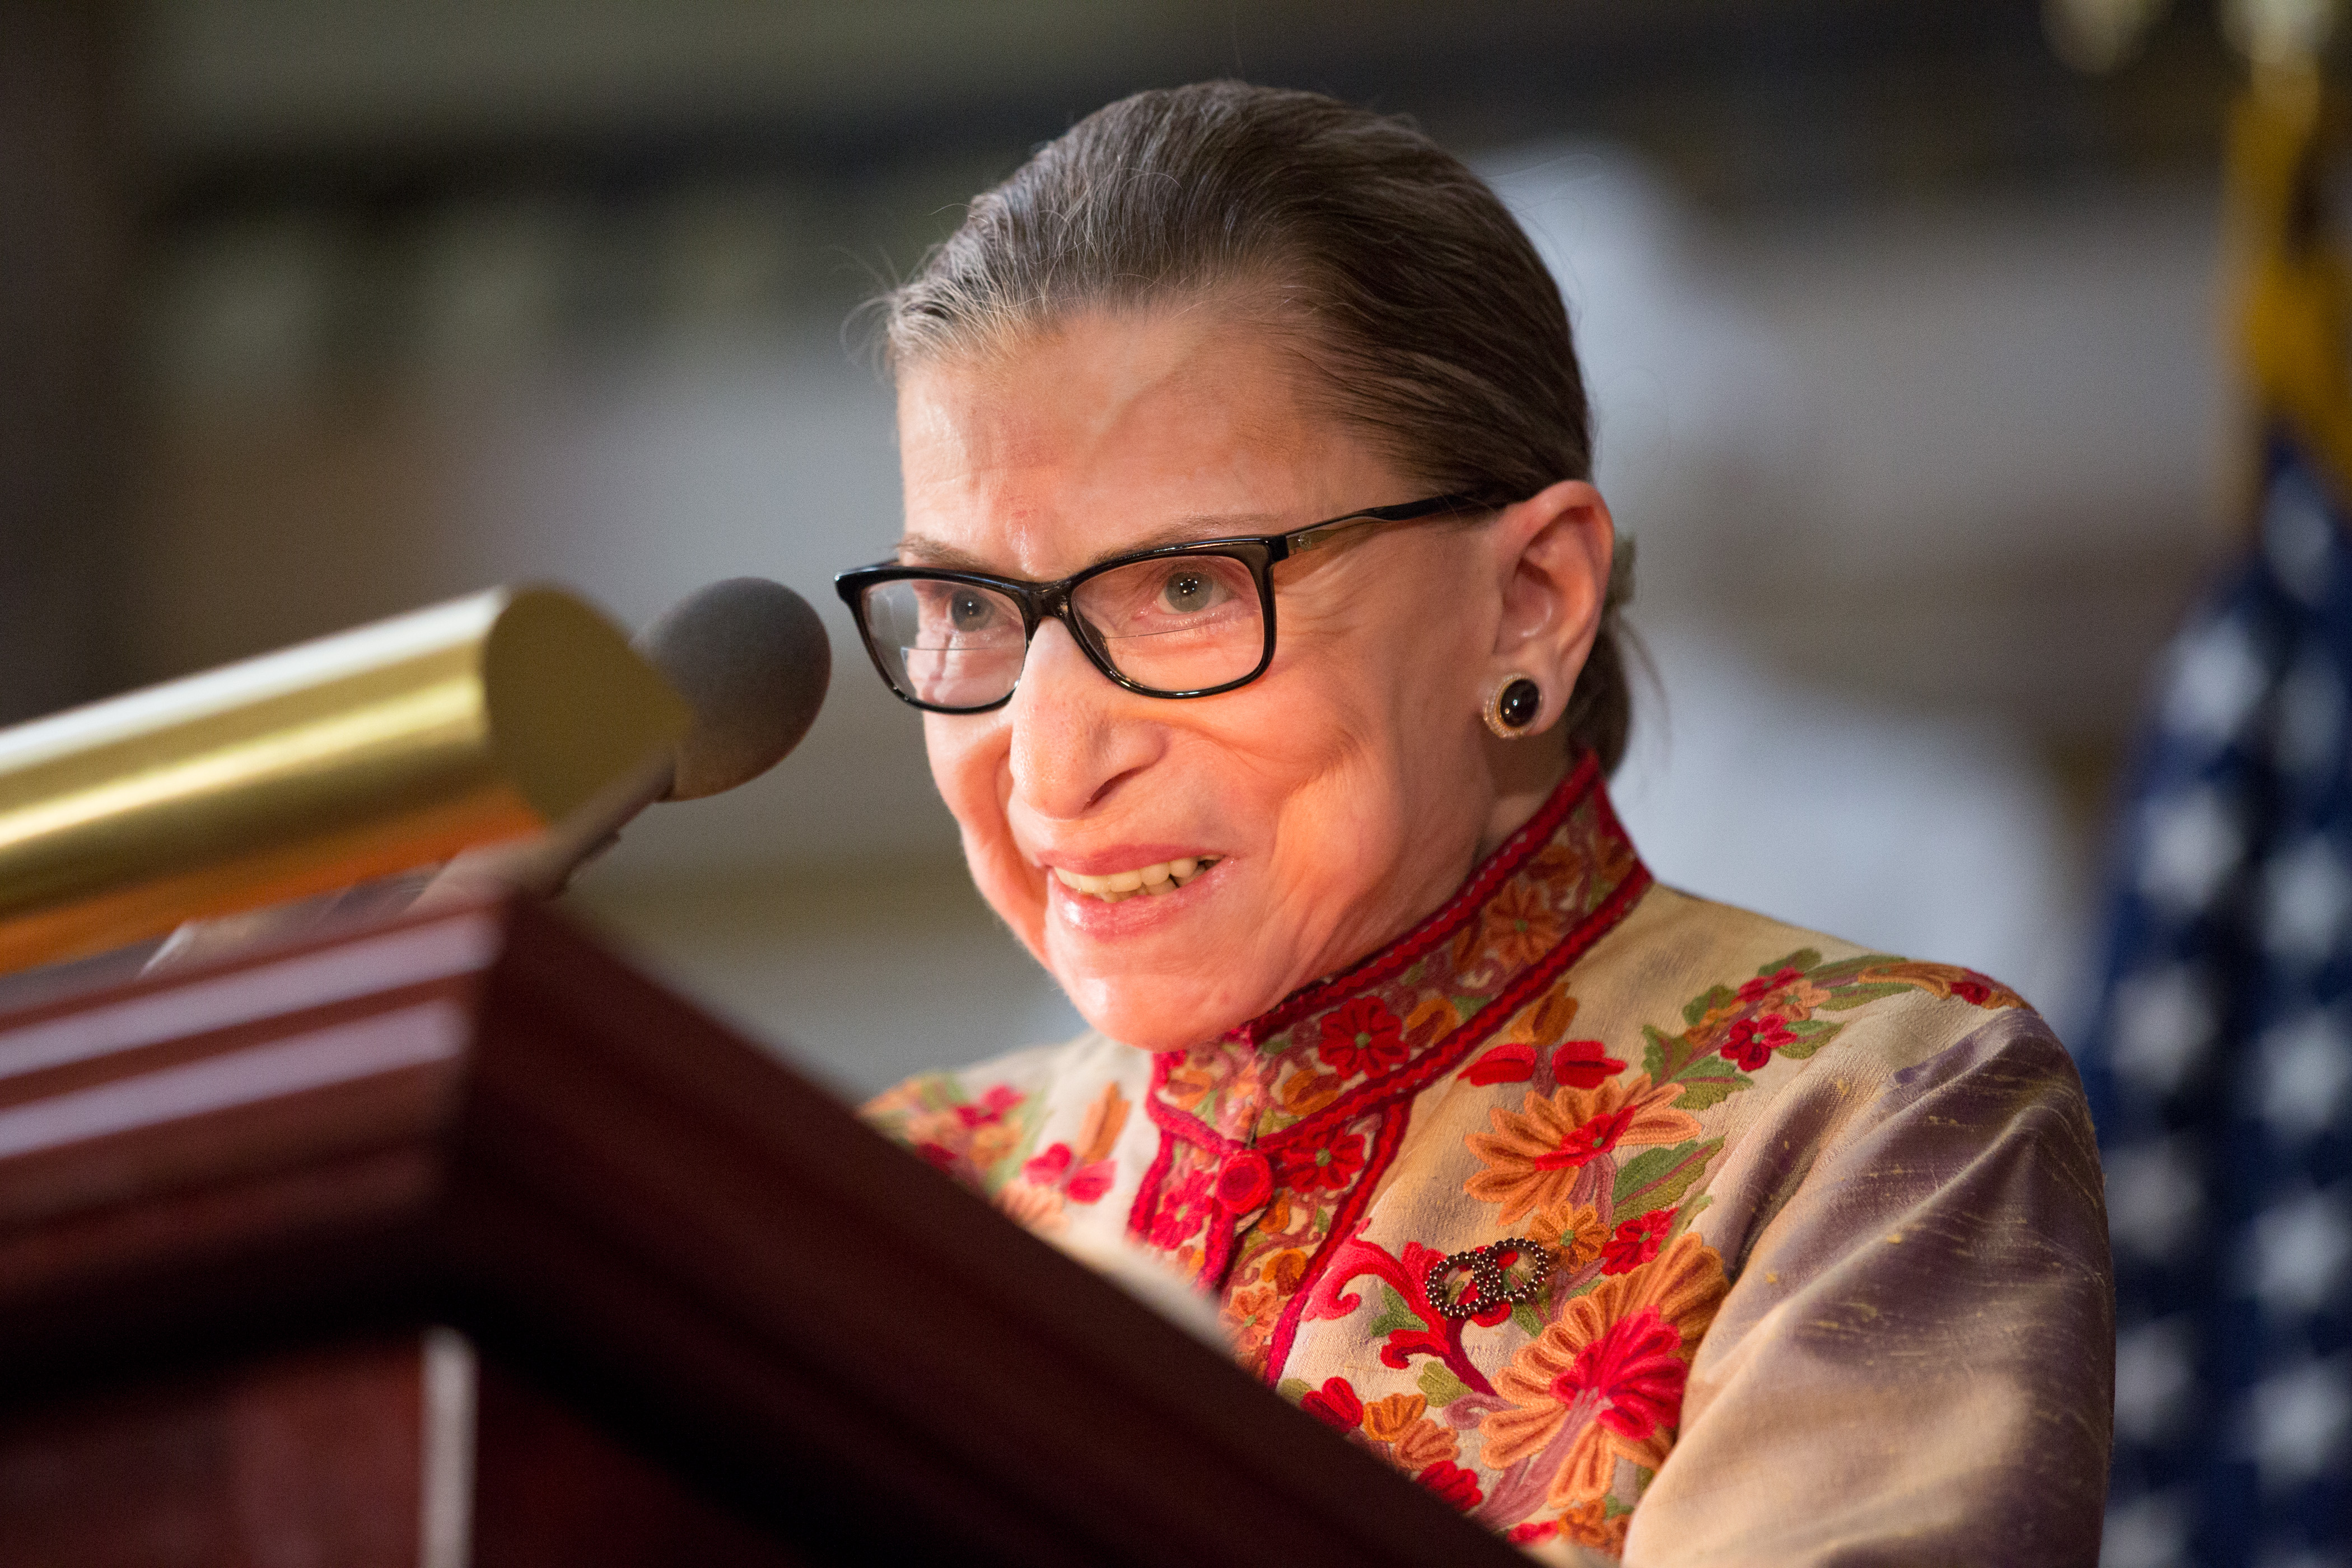 U.S. Supreme Court Justice Ruth Bader Ginsburg speaks at an annual Women's History Month reception hosted by Pelosi in the U.S. capitol building on Capitol Hill in Washington, D.C.